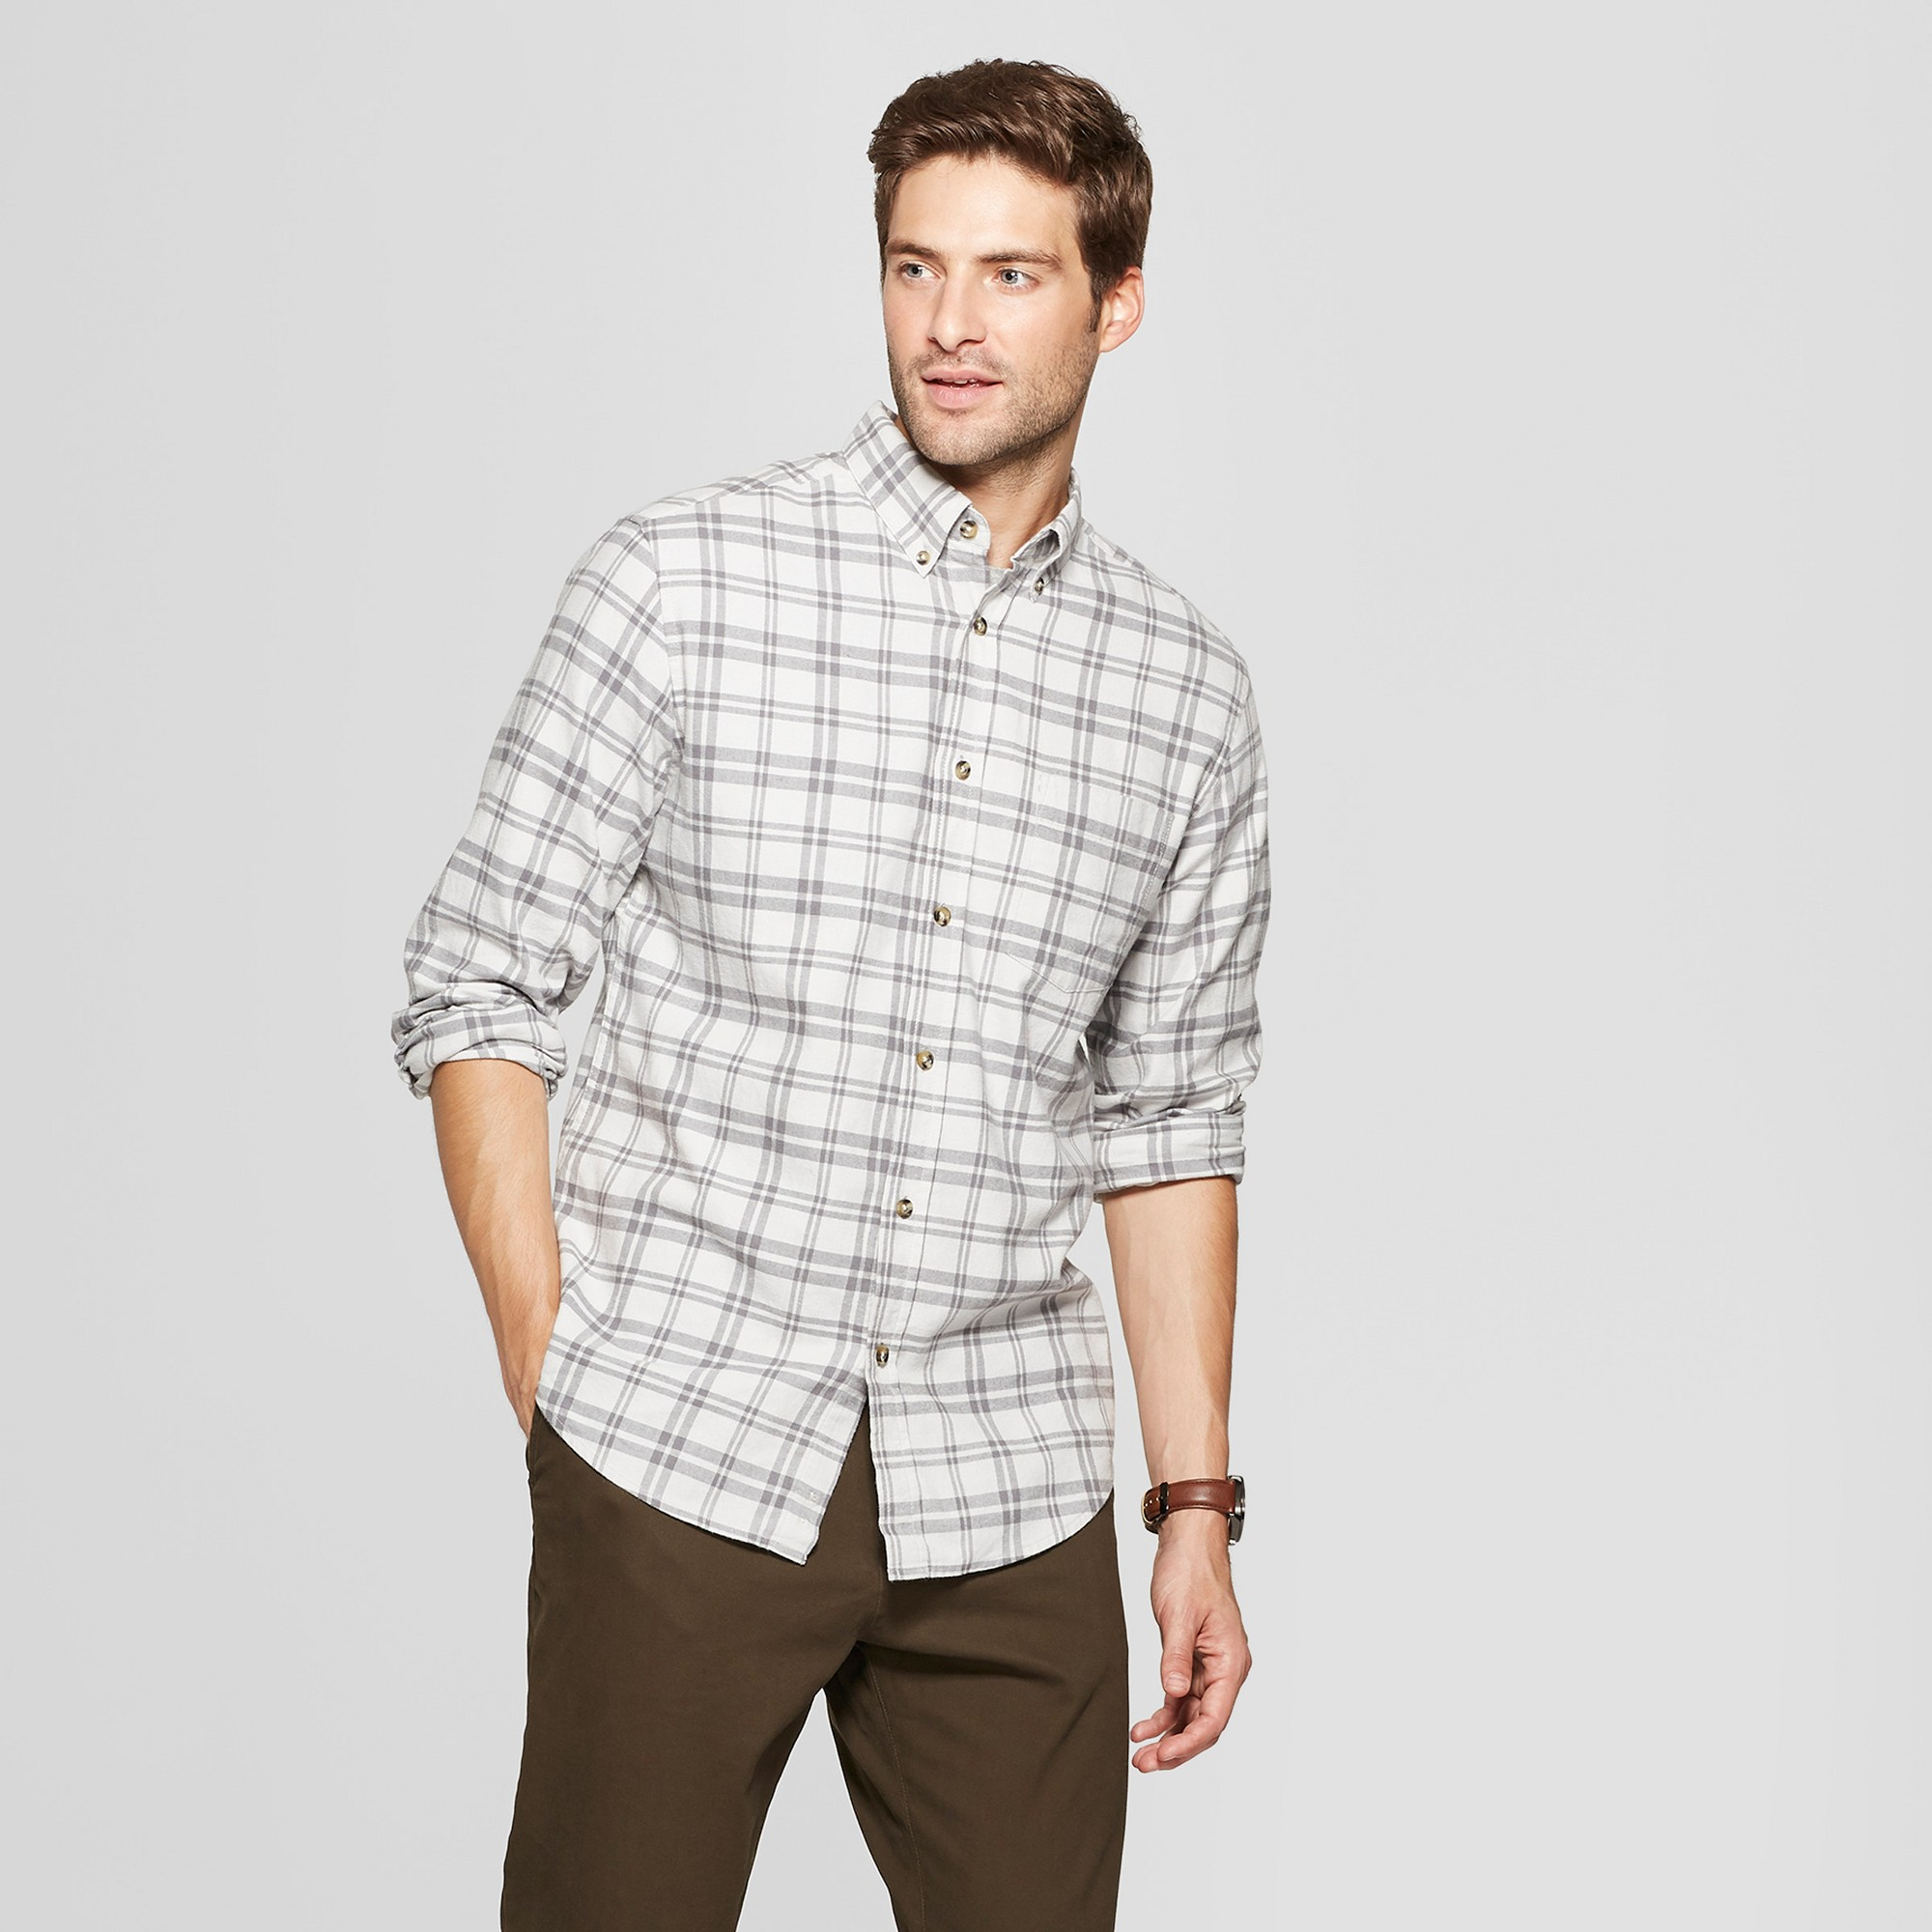 Men's Plaid Standard Fit Pocket Flannel Long Sleeve Collared Button-Down Shirt - Goodfellow & Co Agate Gray 2XL